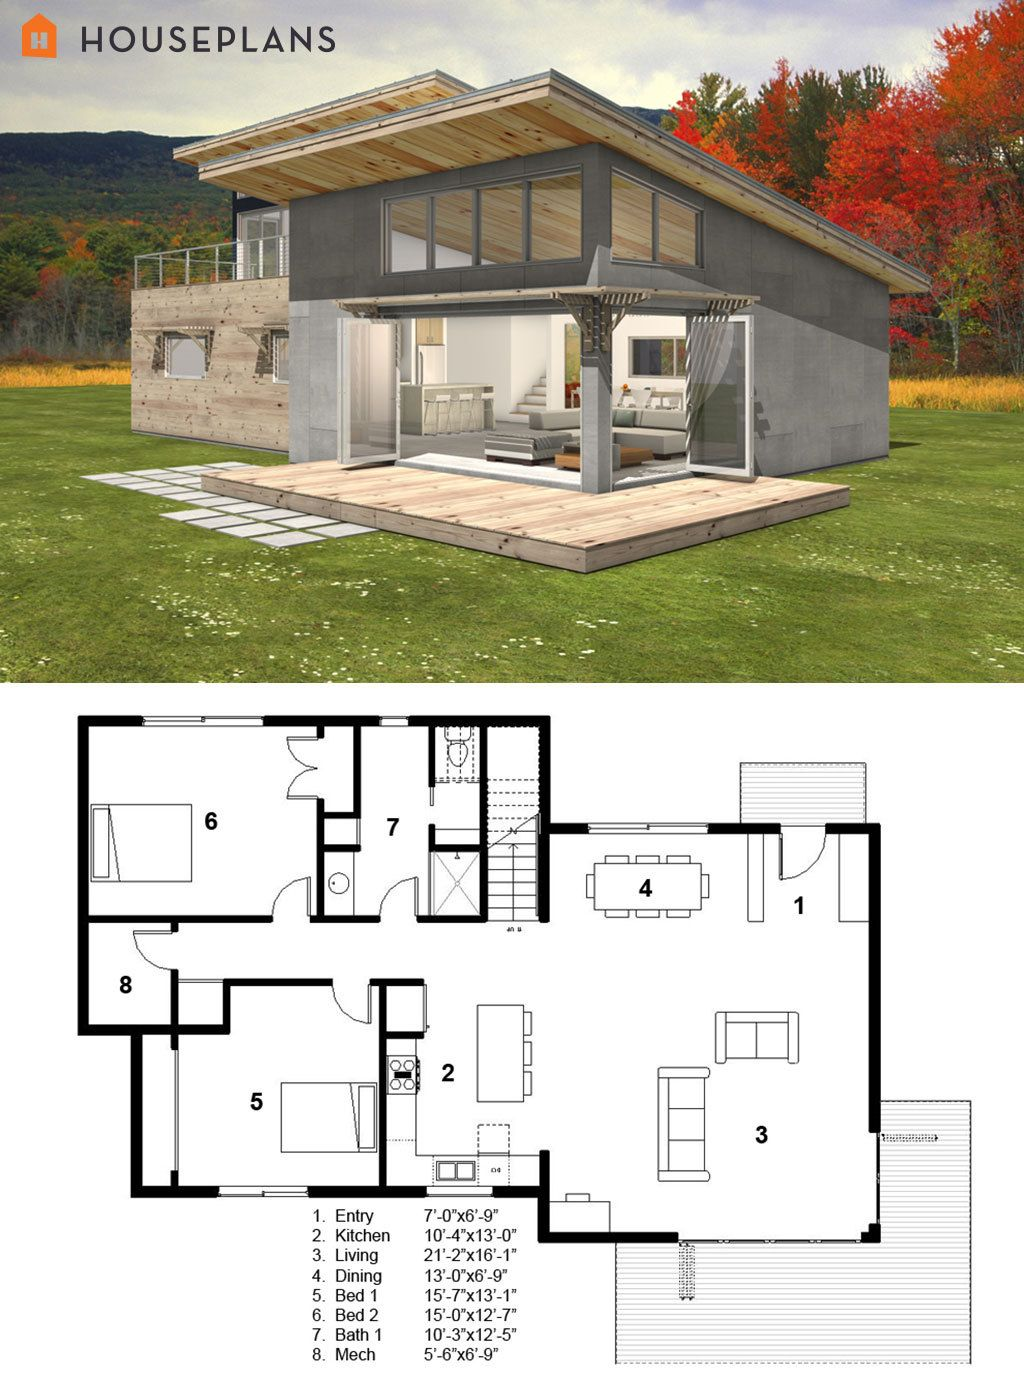 Small modern cabin house plan by freegreen energy for Small glass house plans